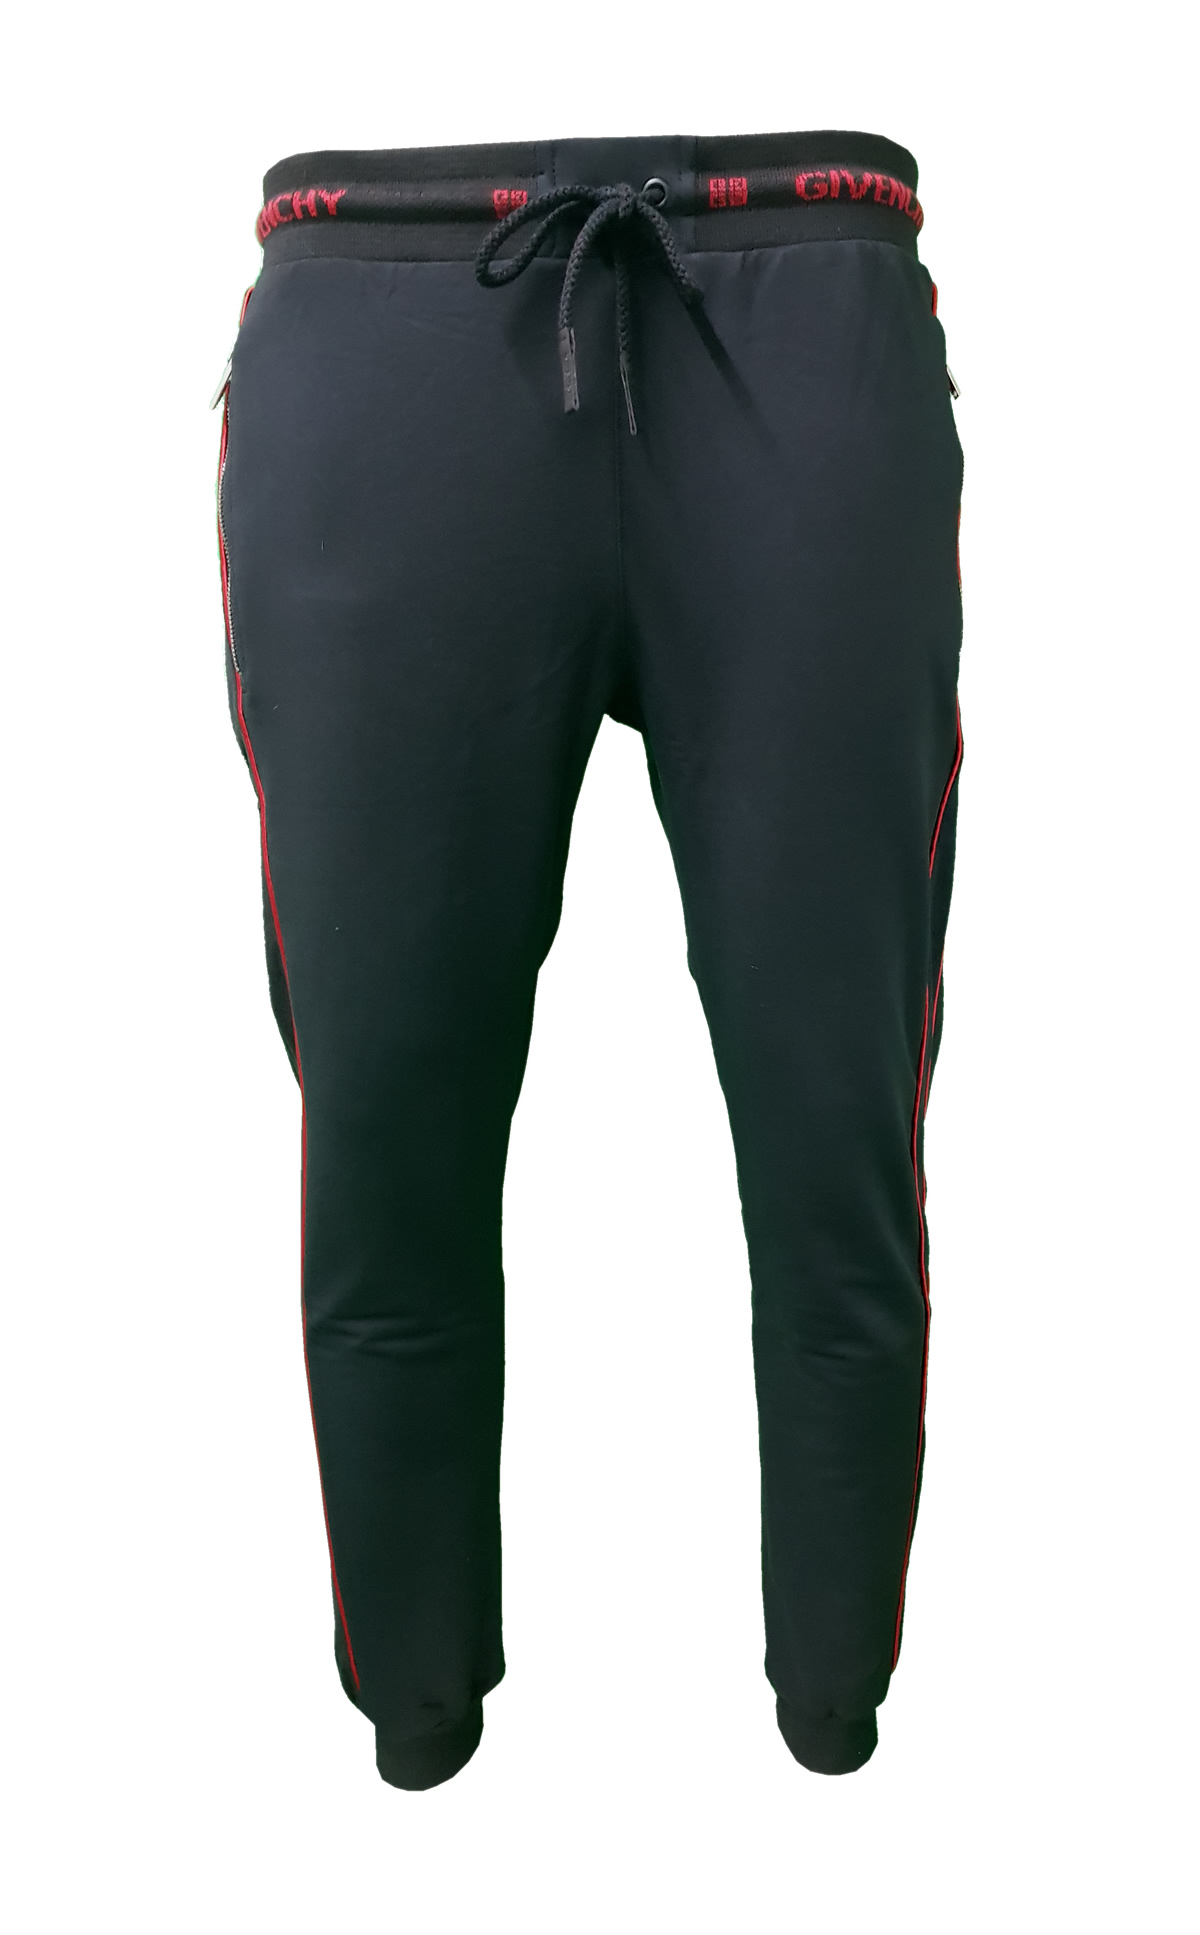 59cdbad31e7dd Givenchy Men s Complete 2 Piece Top and Bottoms Tracksuit in Black Red -  Bottoms Front